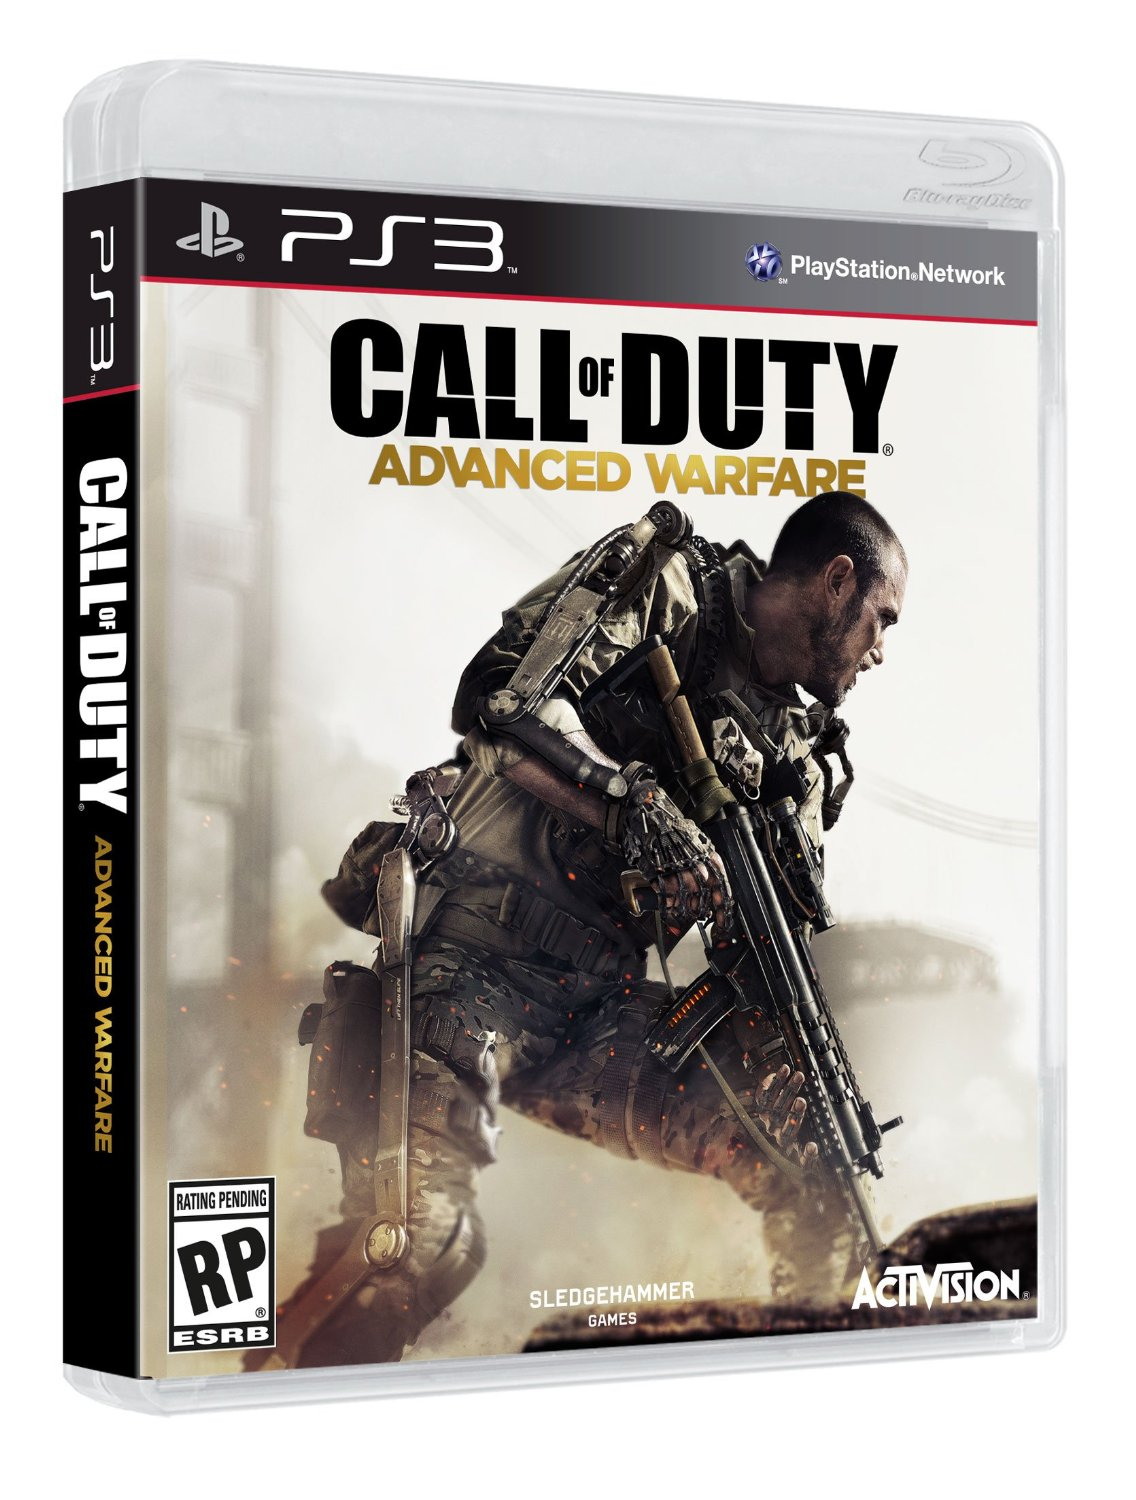 COD Call of Duty Advanced Warfare for PS3 CODIGO POR EMAIL